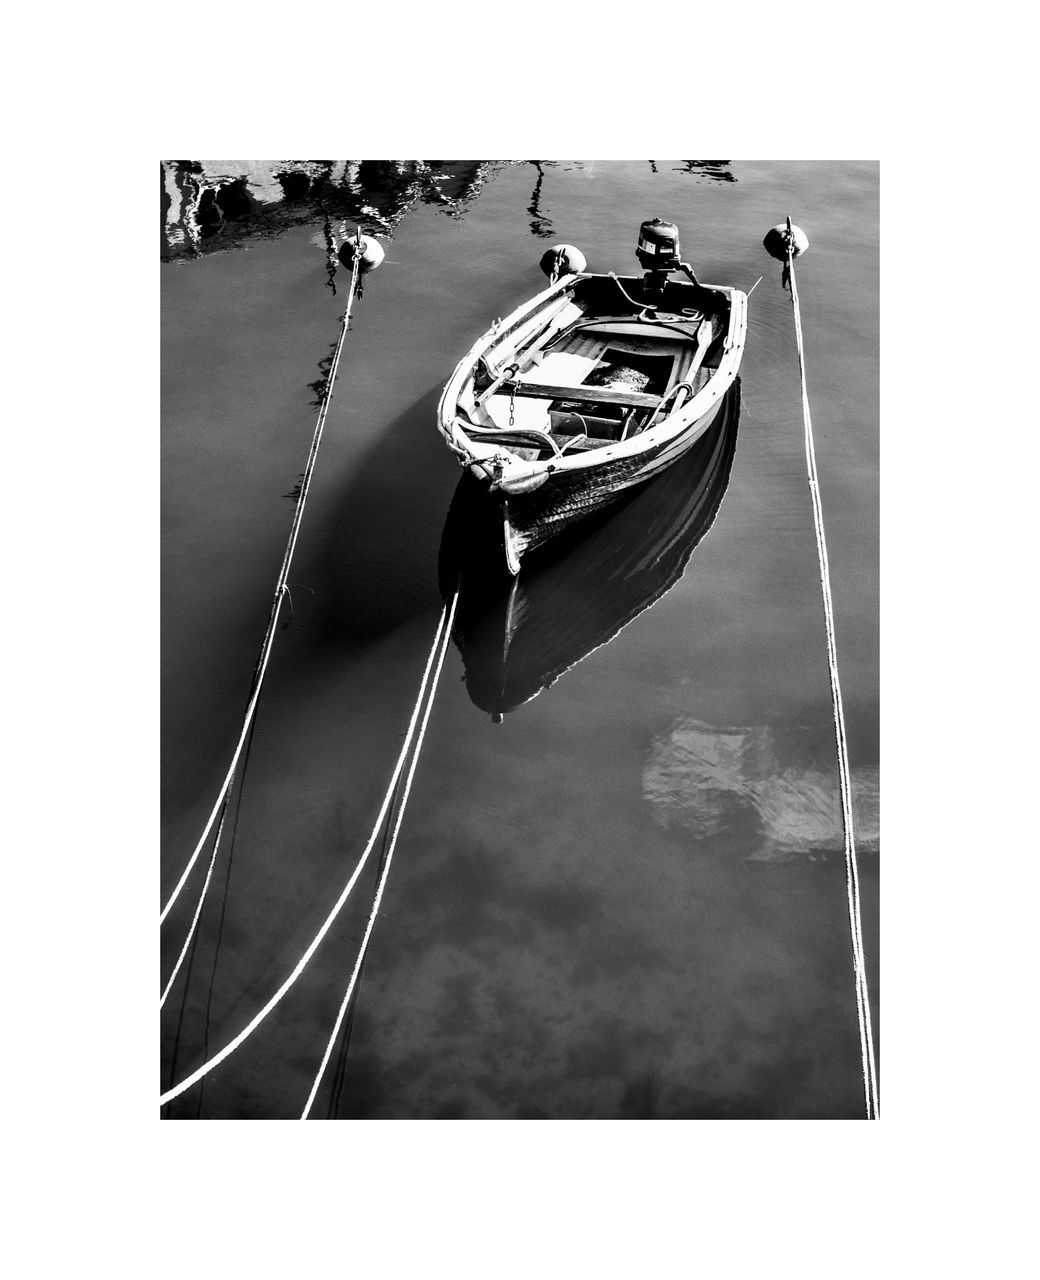 HIGH ANGLE VIEW OF SAILBOAT ON ROPE OVER RIVER